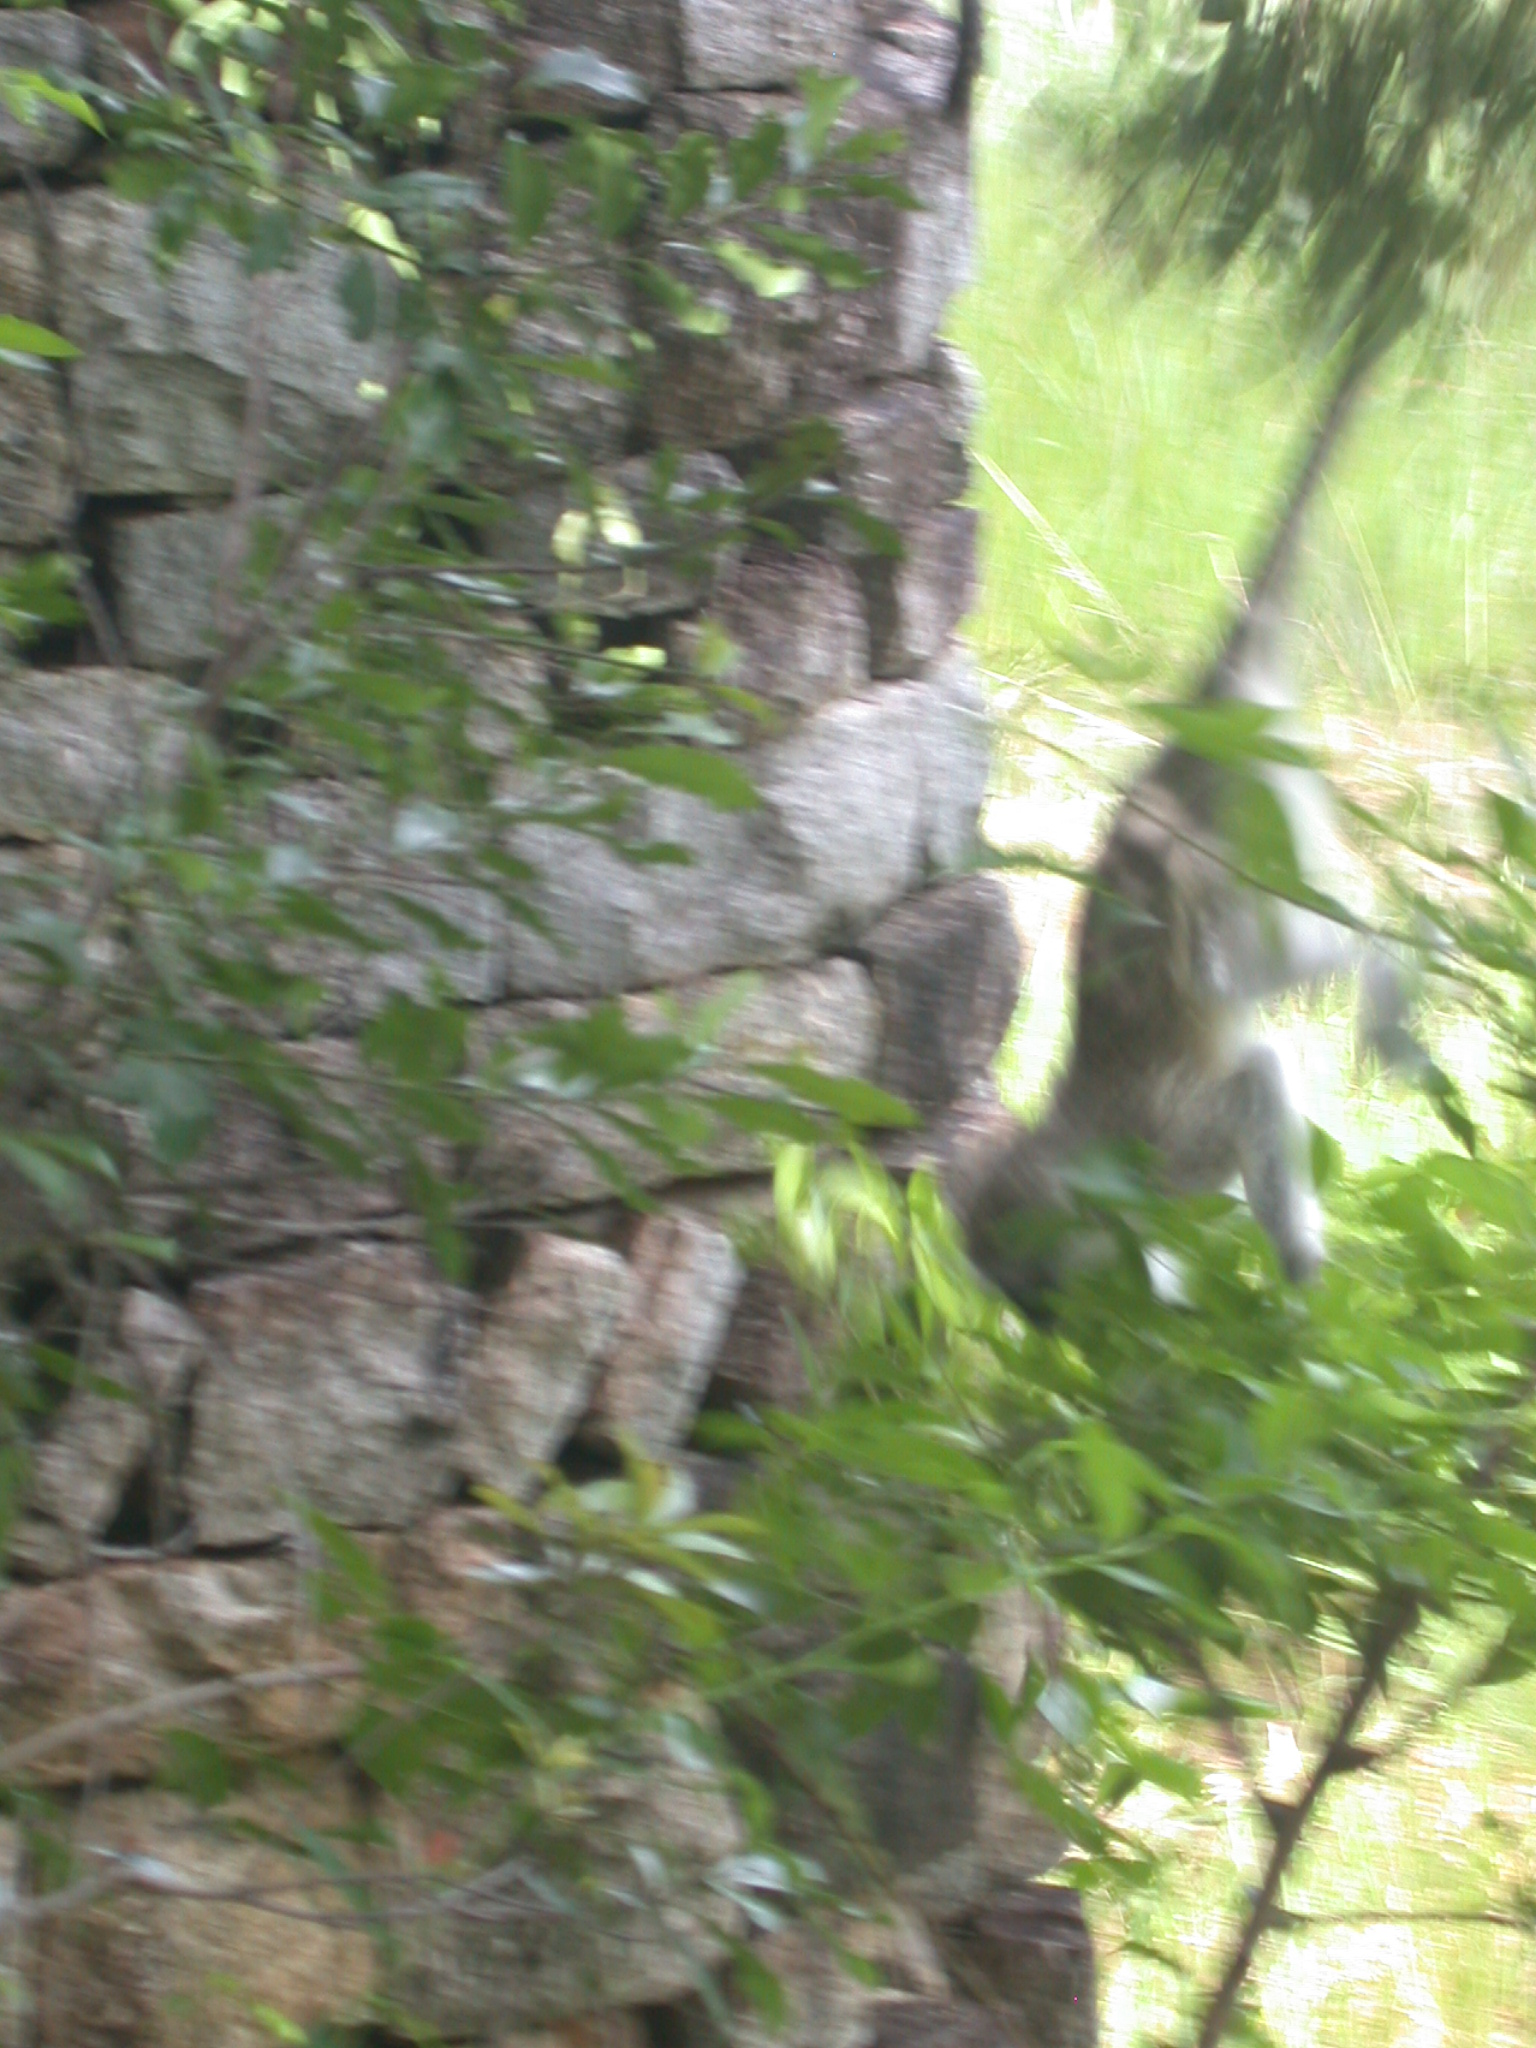 Monkey Jumping From Tree in Meadow Outside My Suite at the Ancient City Lodge, Great Zimbabwe, Outside Masvingo, Zimbabwe